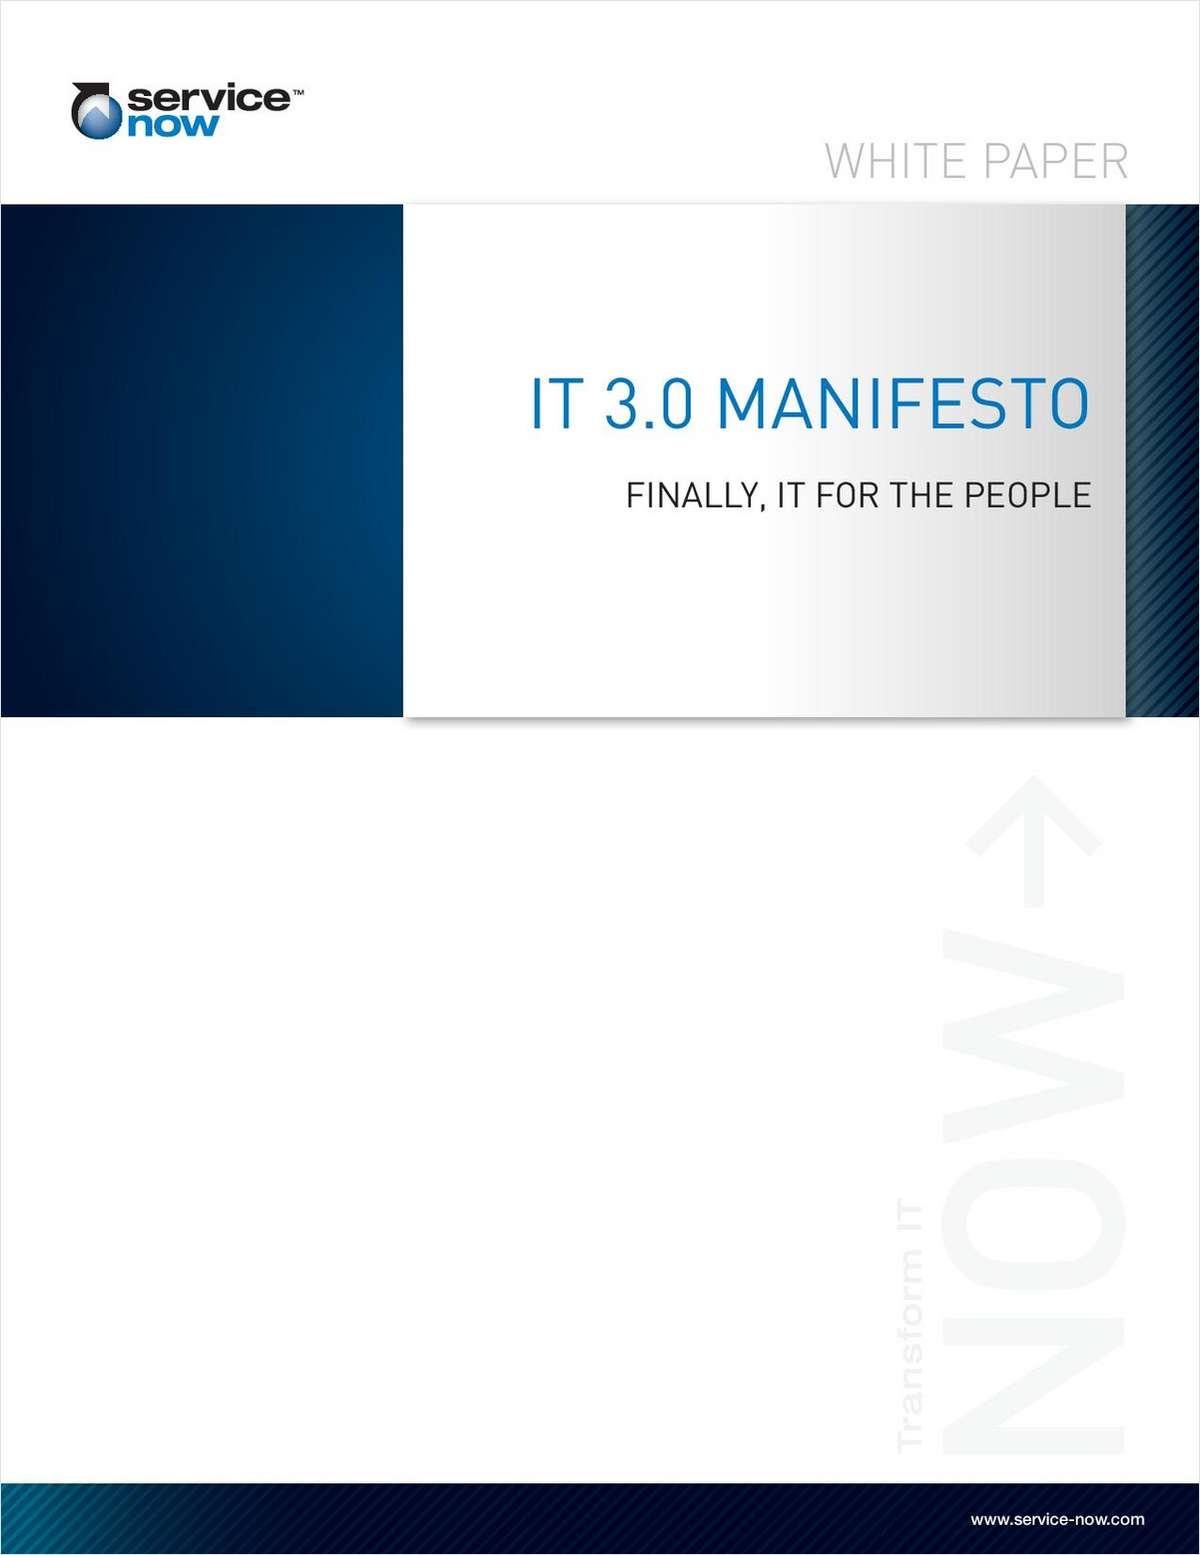 IT 3.0 Manifesto - Finally, IT for the People